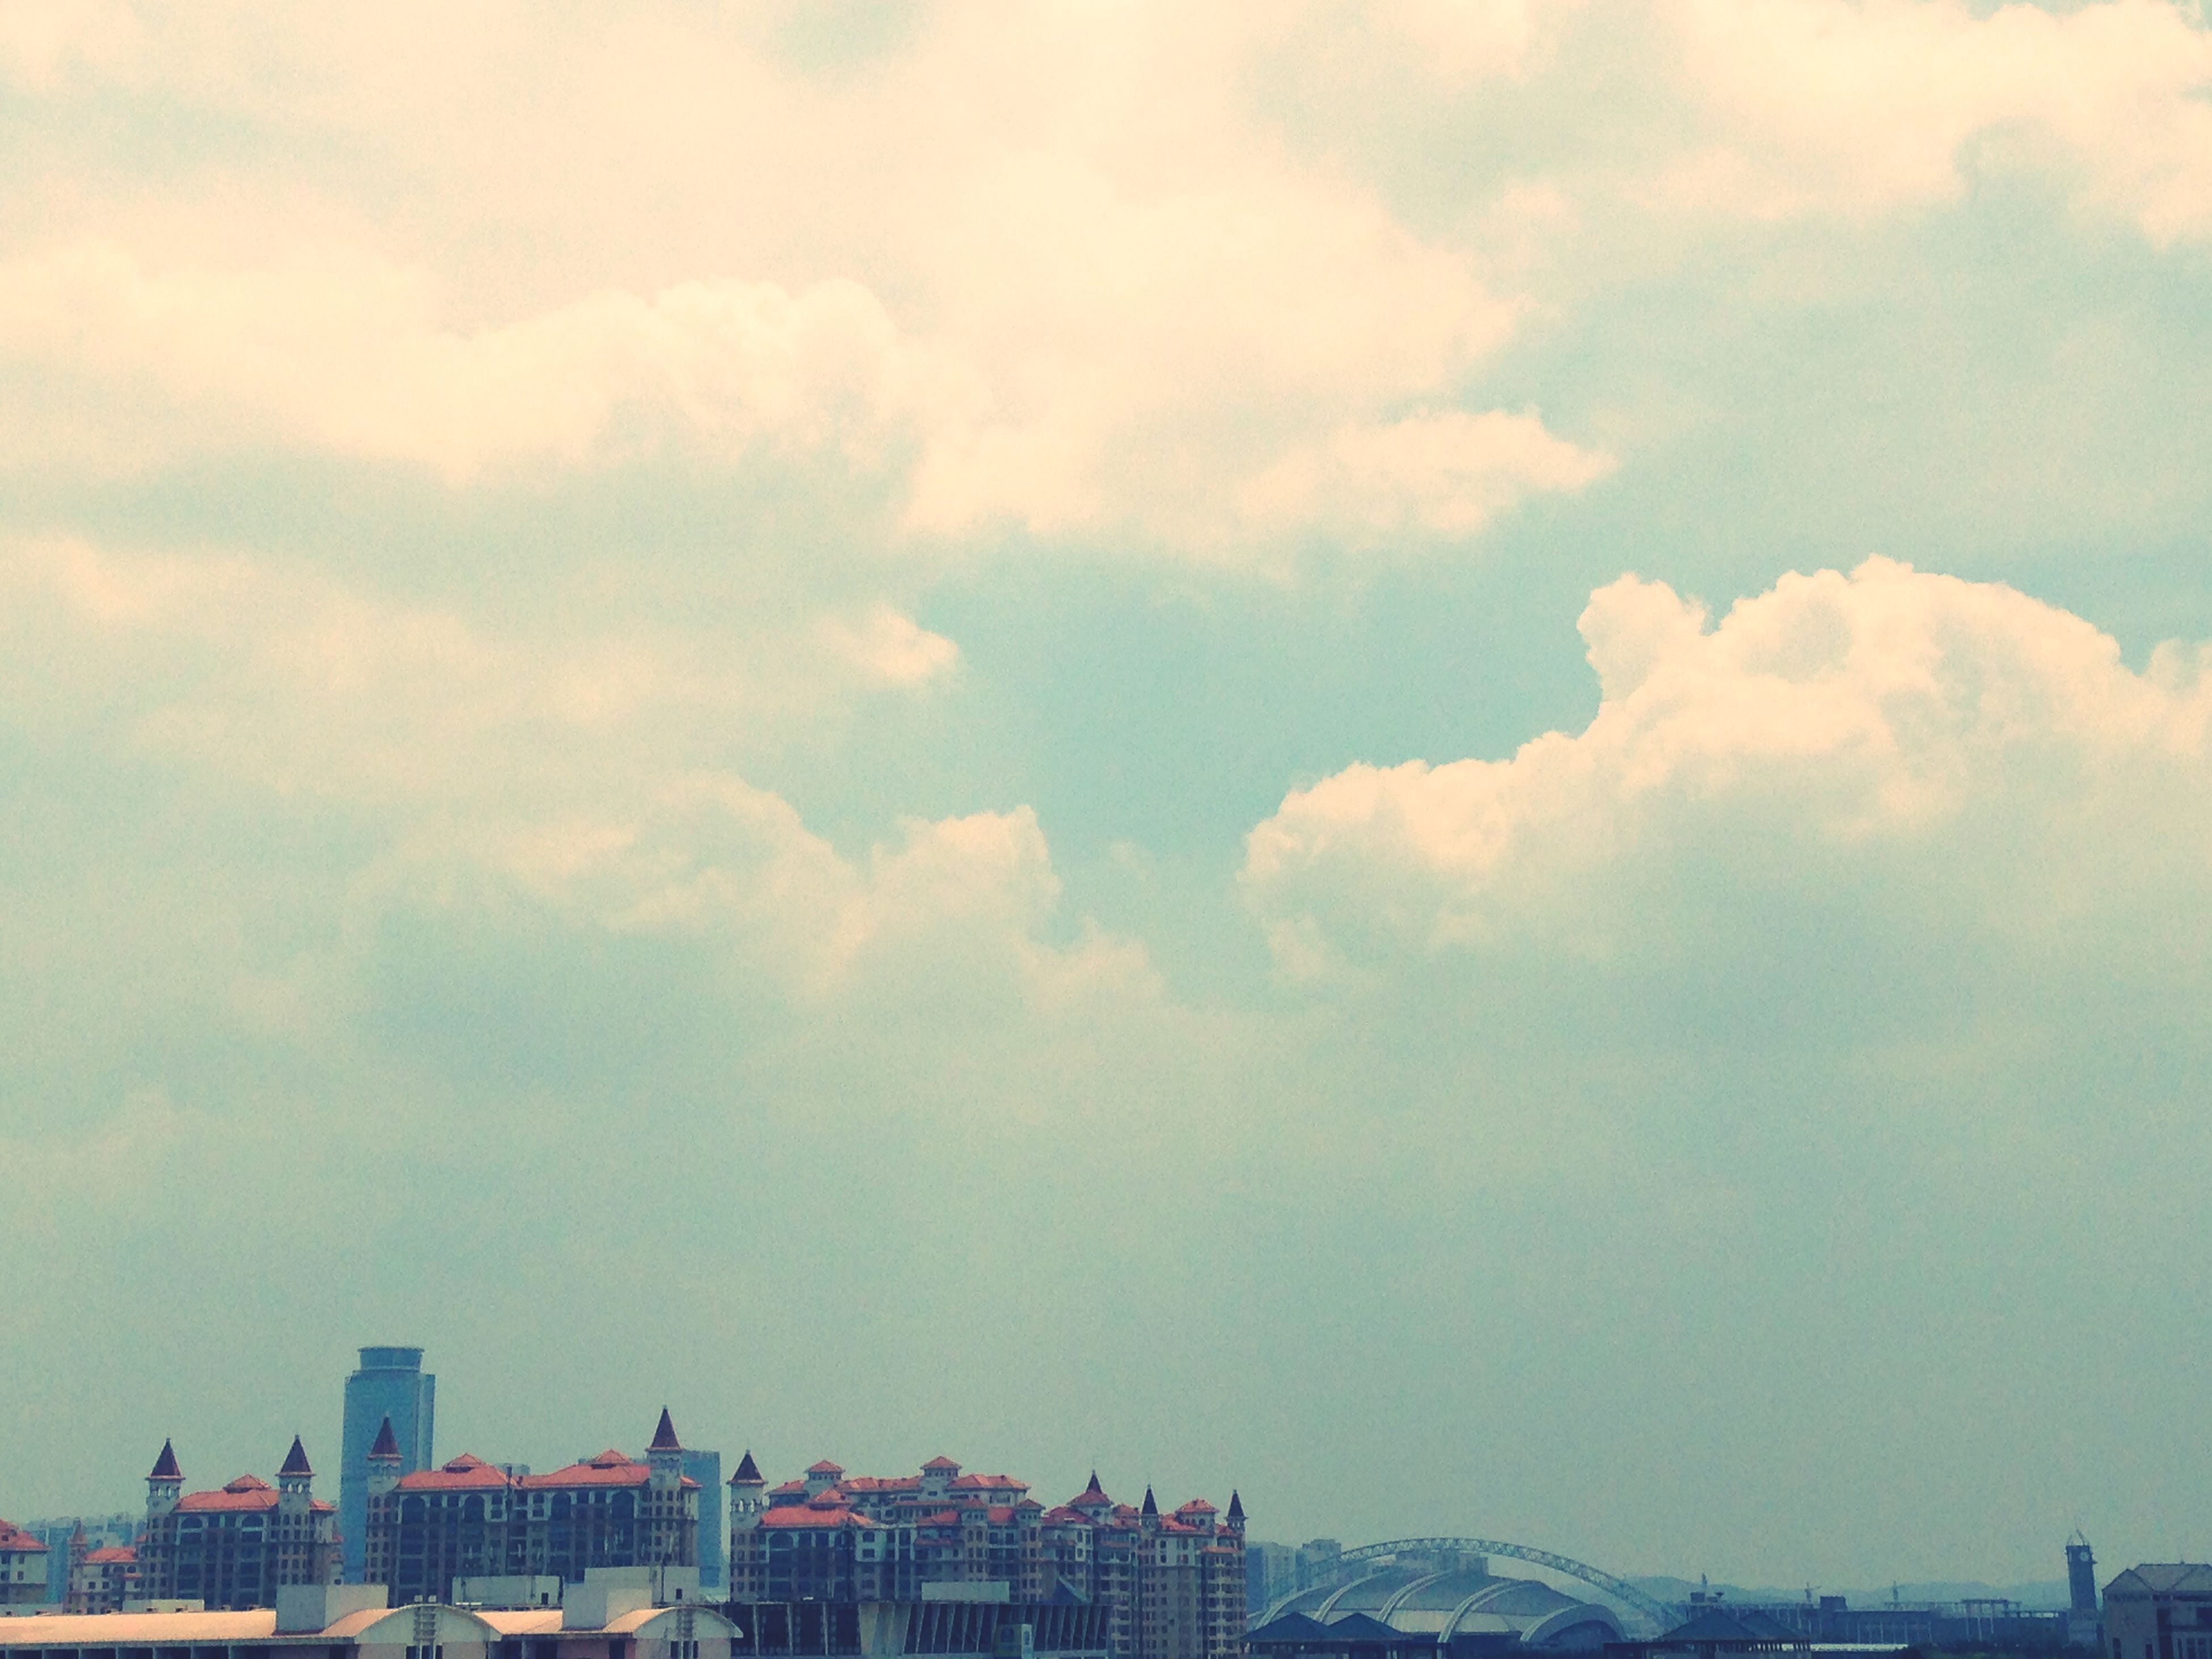 building exterior, architecture, built structure, sky, cloud - sky, cloudy, city, cloud, residential building, residential structure, cityscape, low angle view, building, weather, outdoors, house, day, nature, residential district, no people